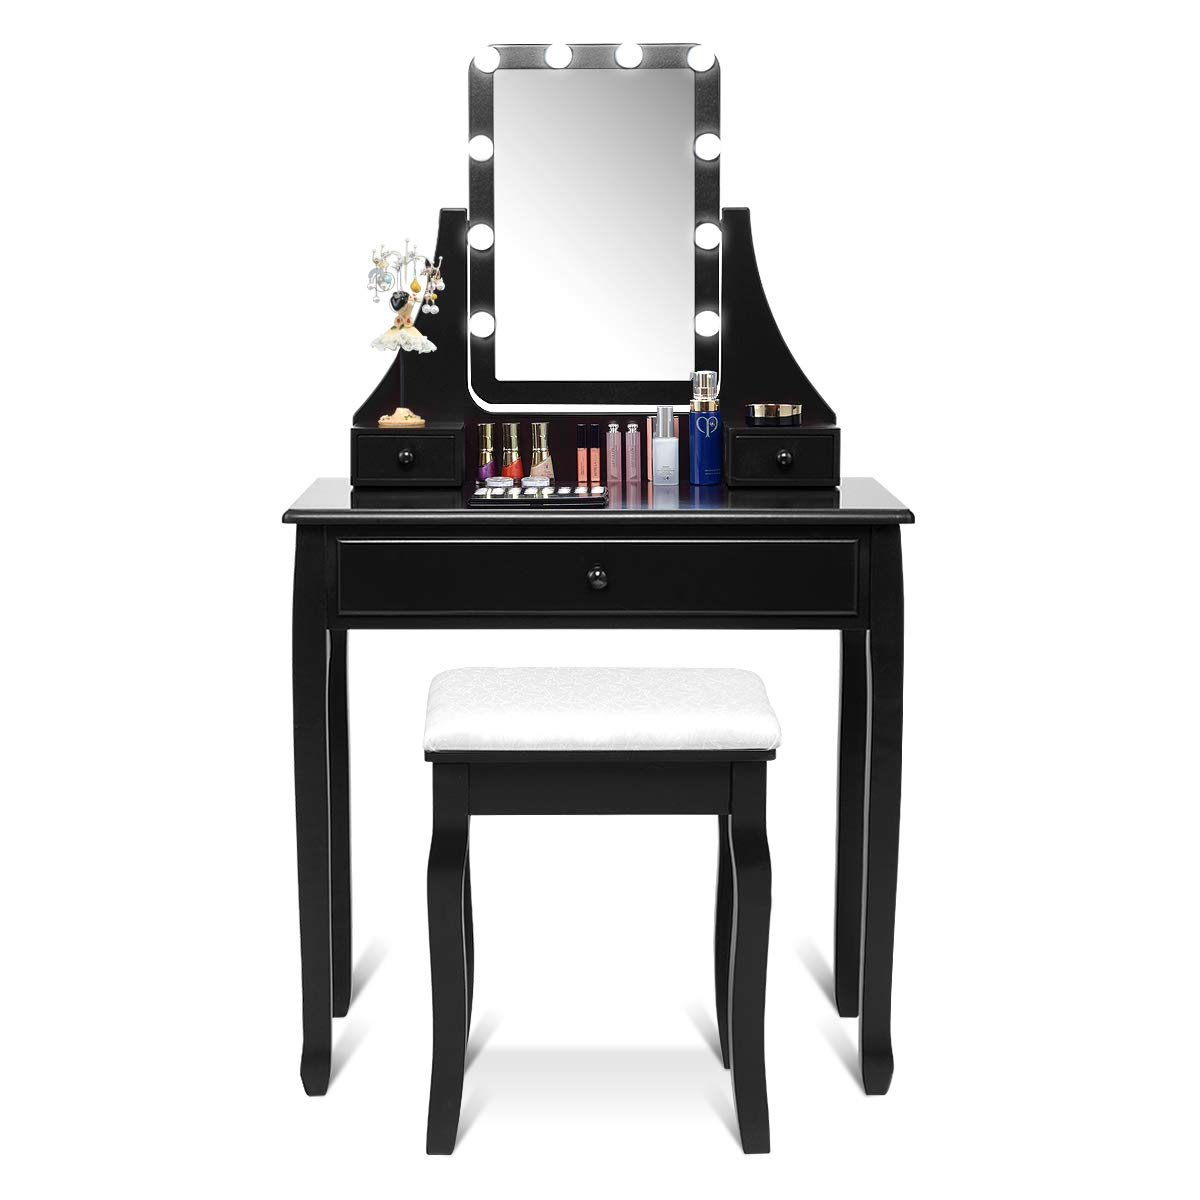 CHARMAID Vanity Set with Lighted Mirror, Makeup Dressing Table with 10 LED Dimmable Bulbs, Touch Switch, 3 Drawers 2 Dividers, Modern Bedroom Makeup Table with Cushioned Stool for Women Girls Black